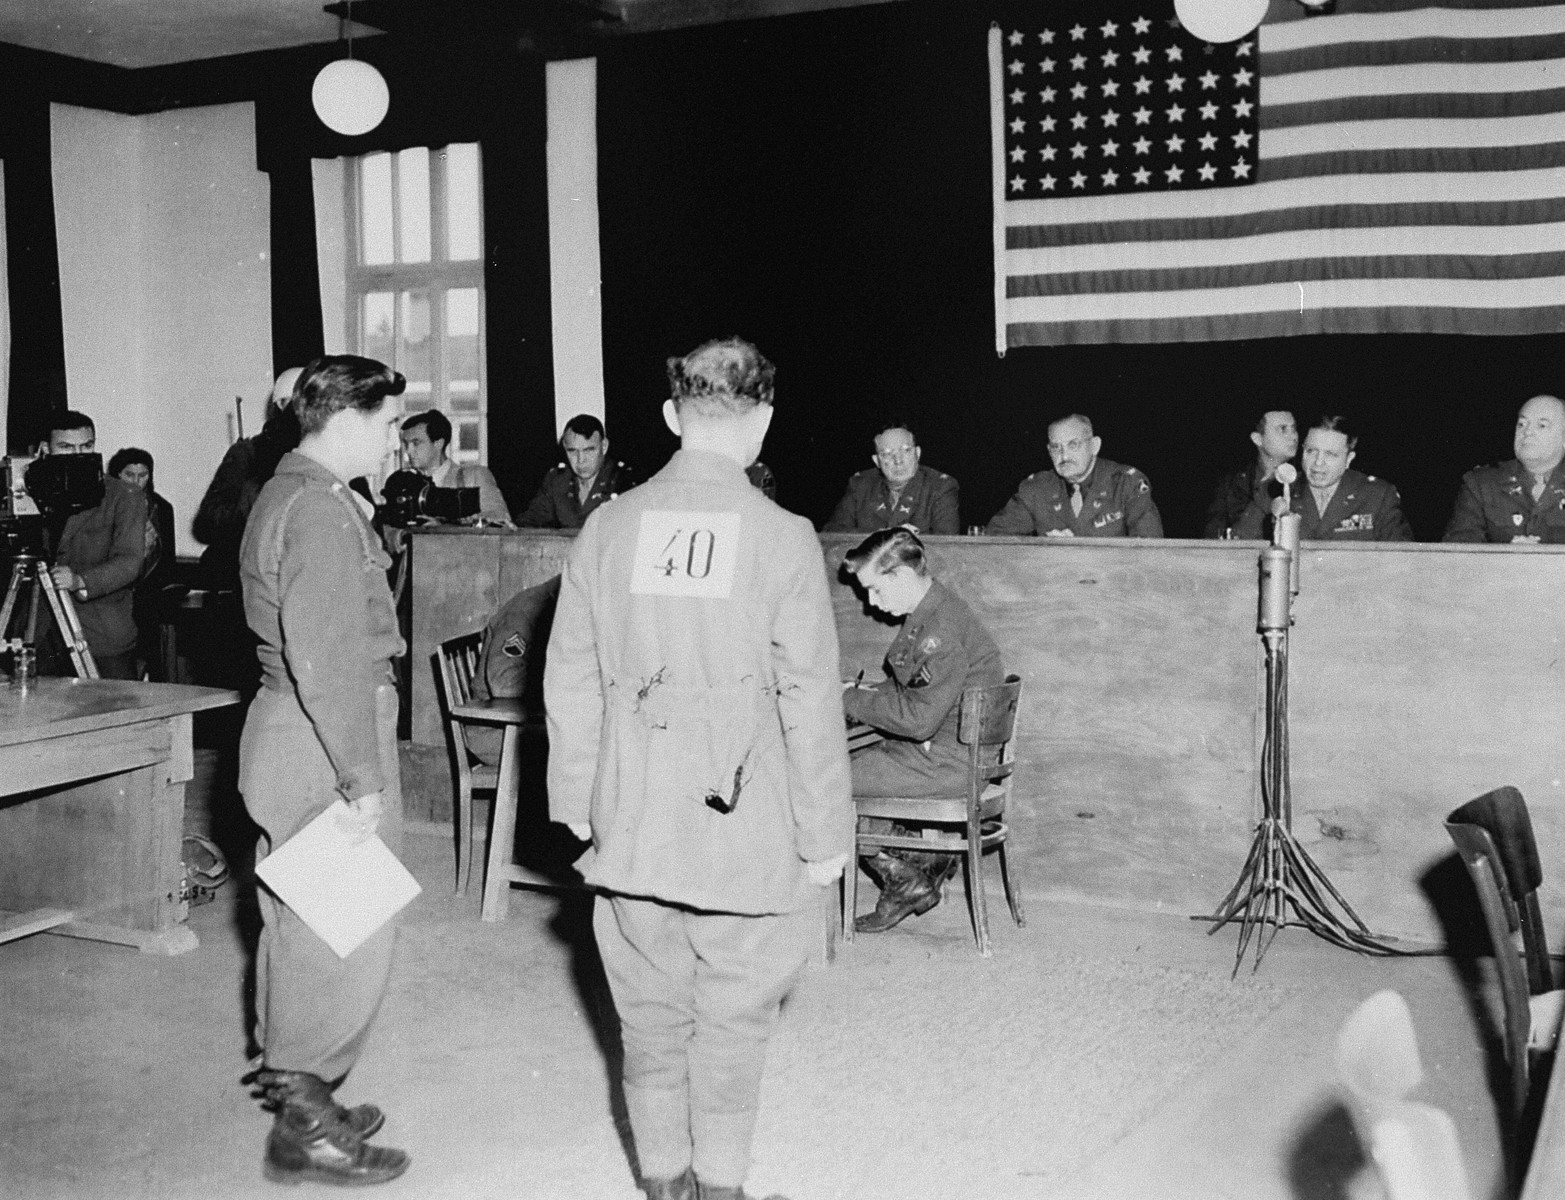 Former SS-Sturmbannfuehrer Friedrich Weitzel, the officer in charge of food and clothing distribution in Dachau, is sentenced to death by hanging by the American military tribunal hearing the trial of former camp personnel and prisoners from Dachau.